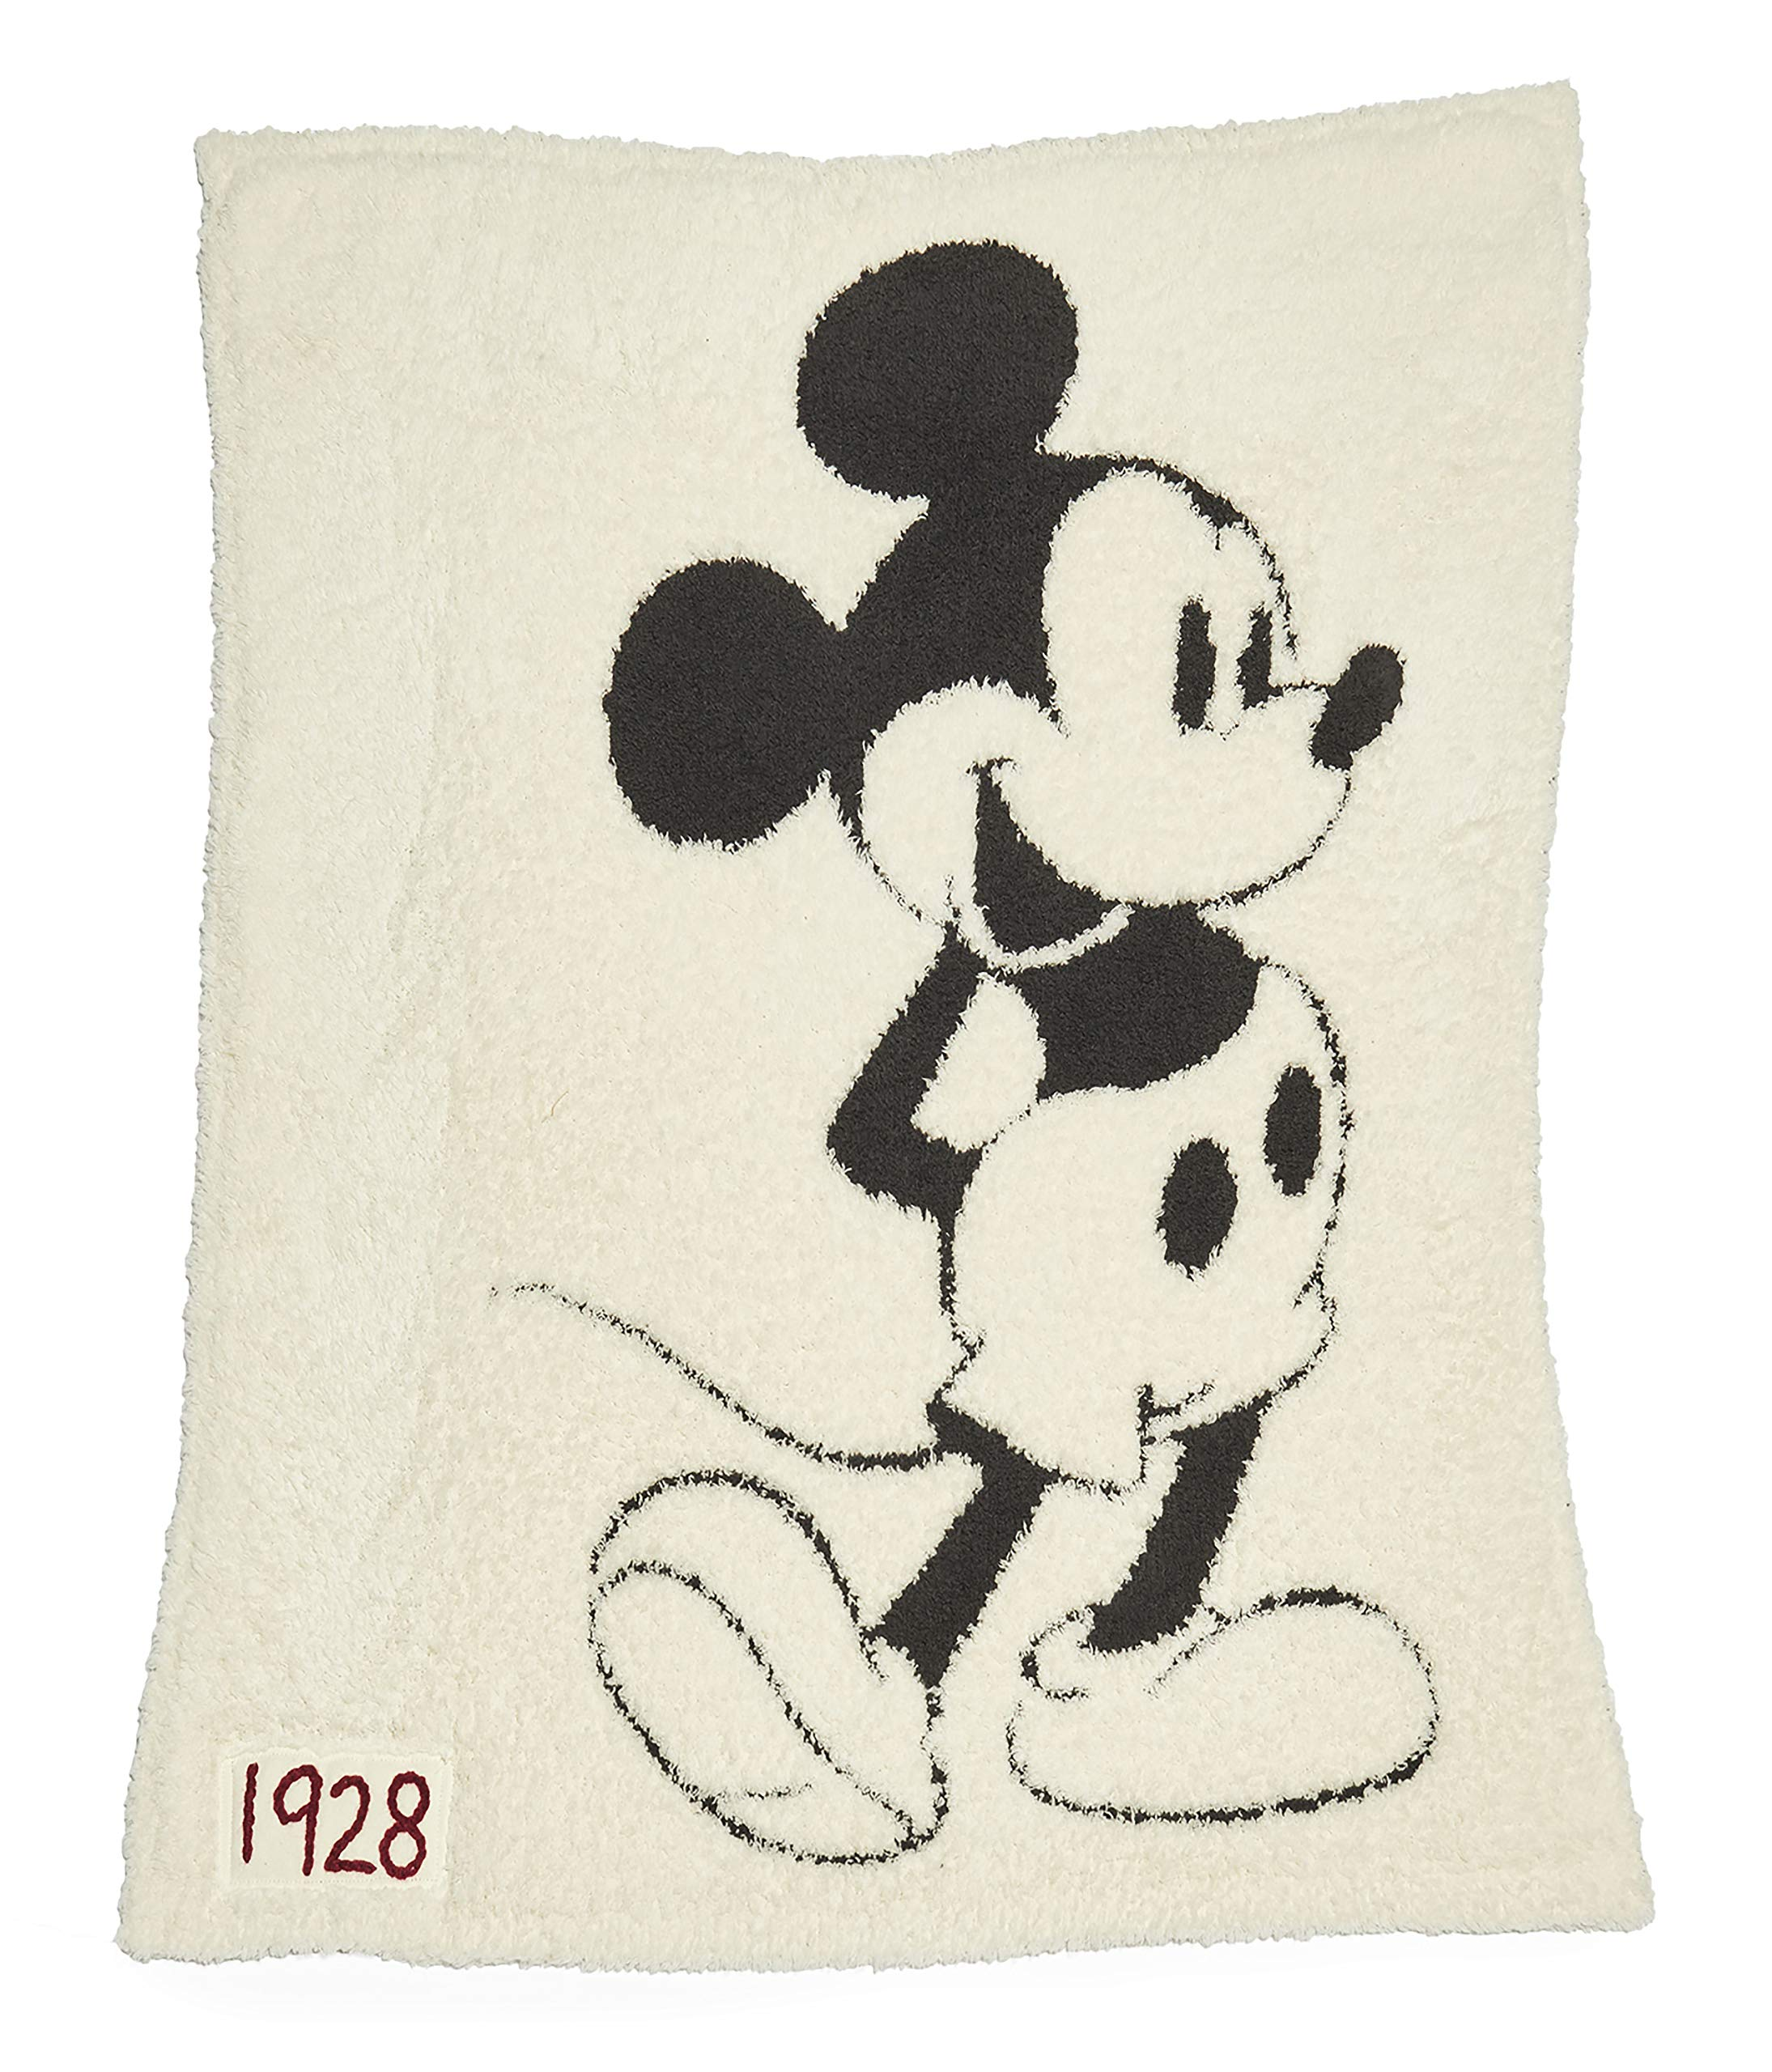 Barefoot Dreams CozyChic Unisex Classic Mickey Mouse Baby Blanket Disney Series- Cream/Carbon by Barefoot Dreams (Image #1)